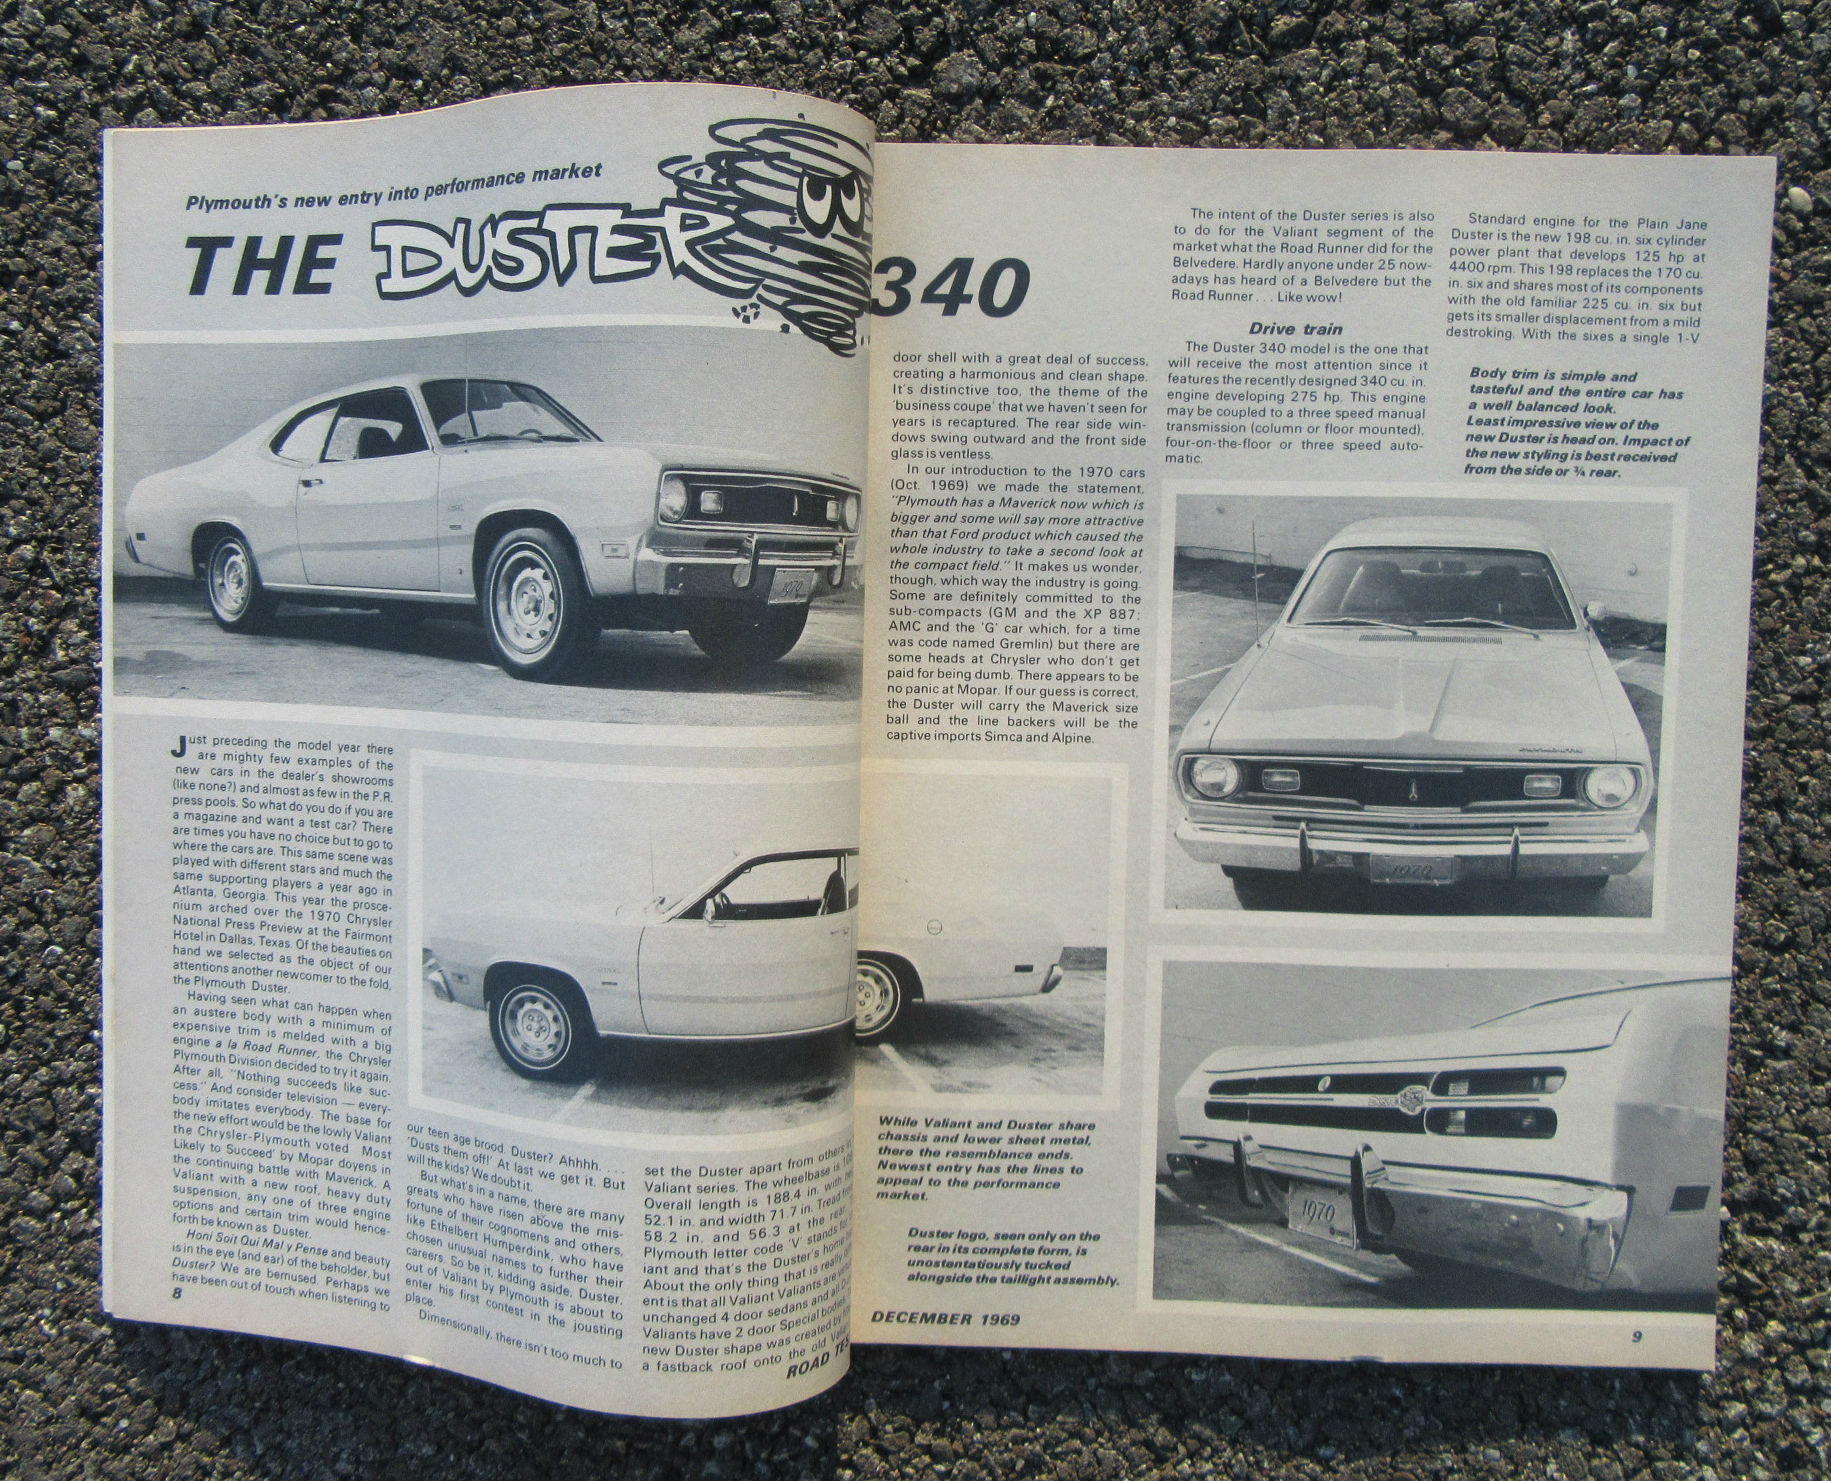 ROAD TEST 12/1969 [Plymouth Duster 340]